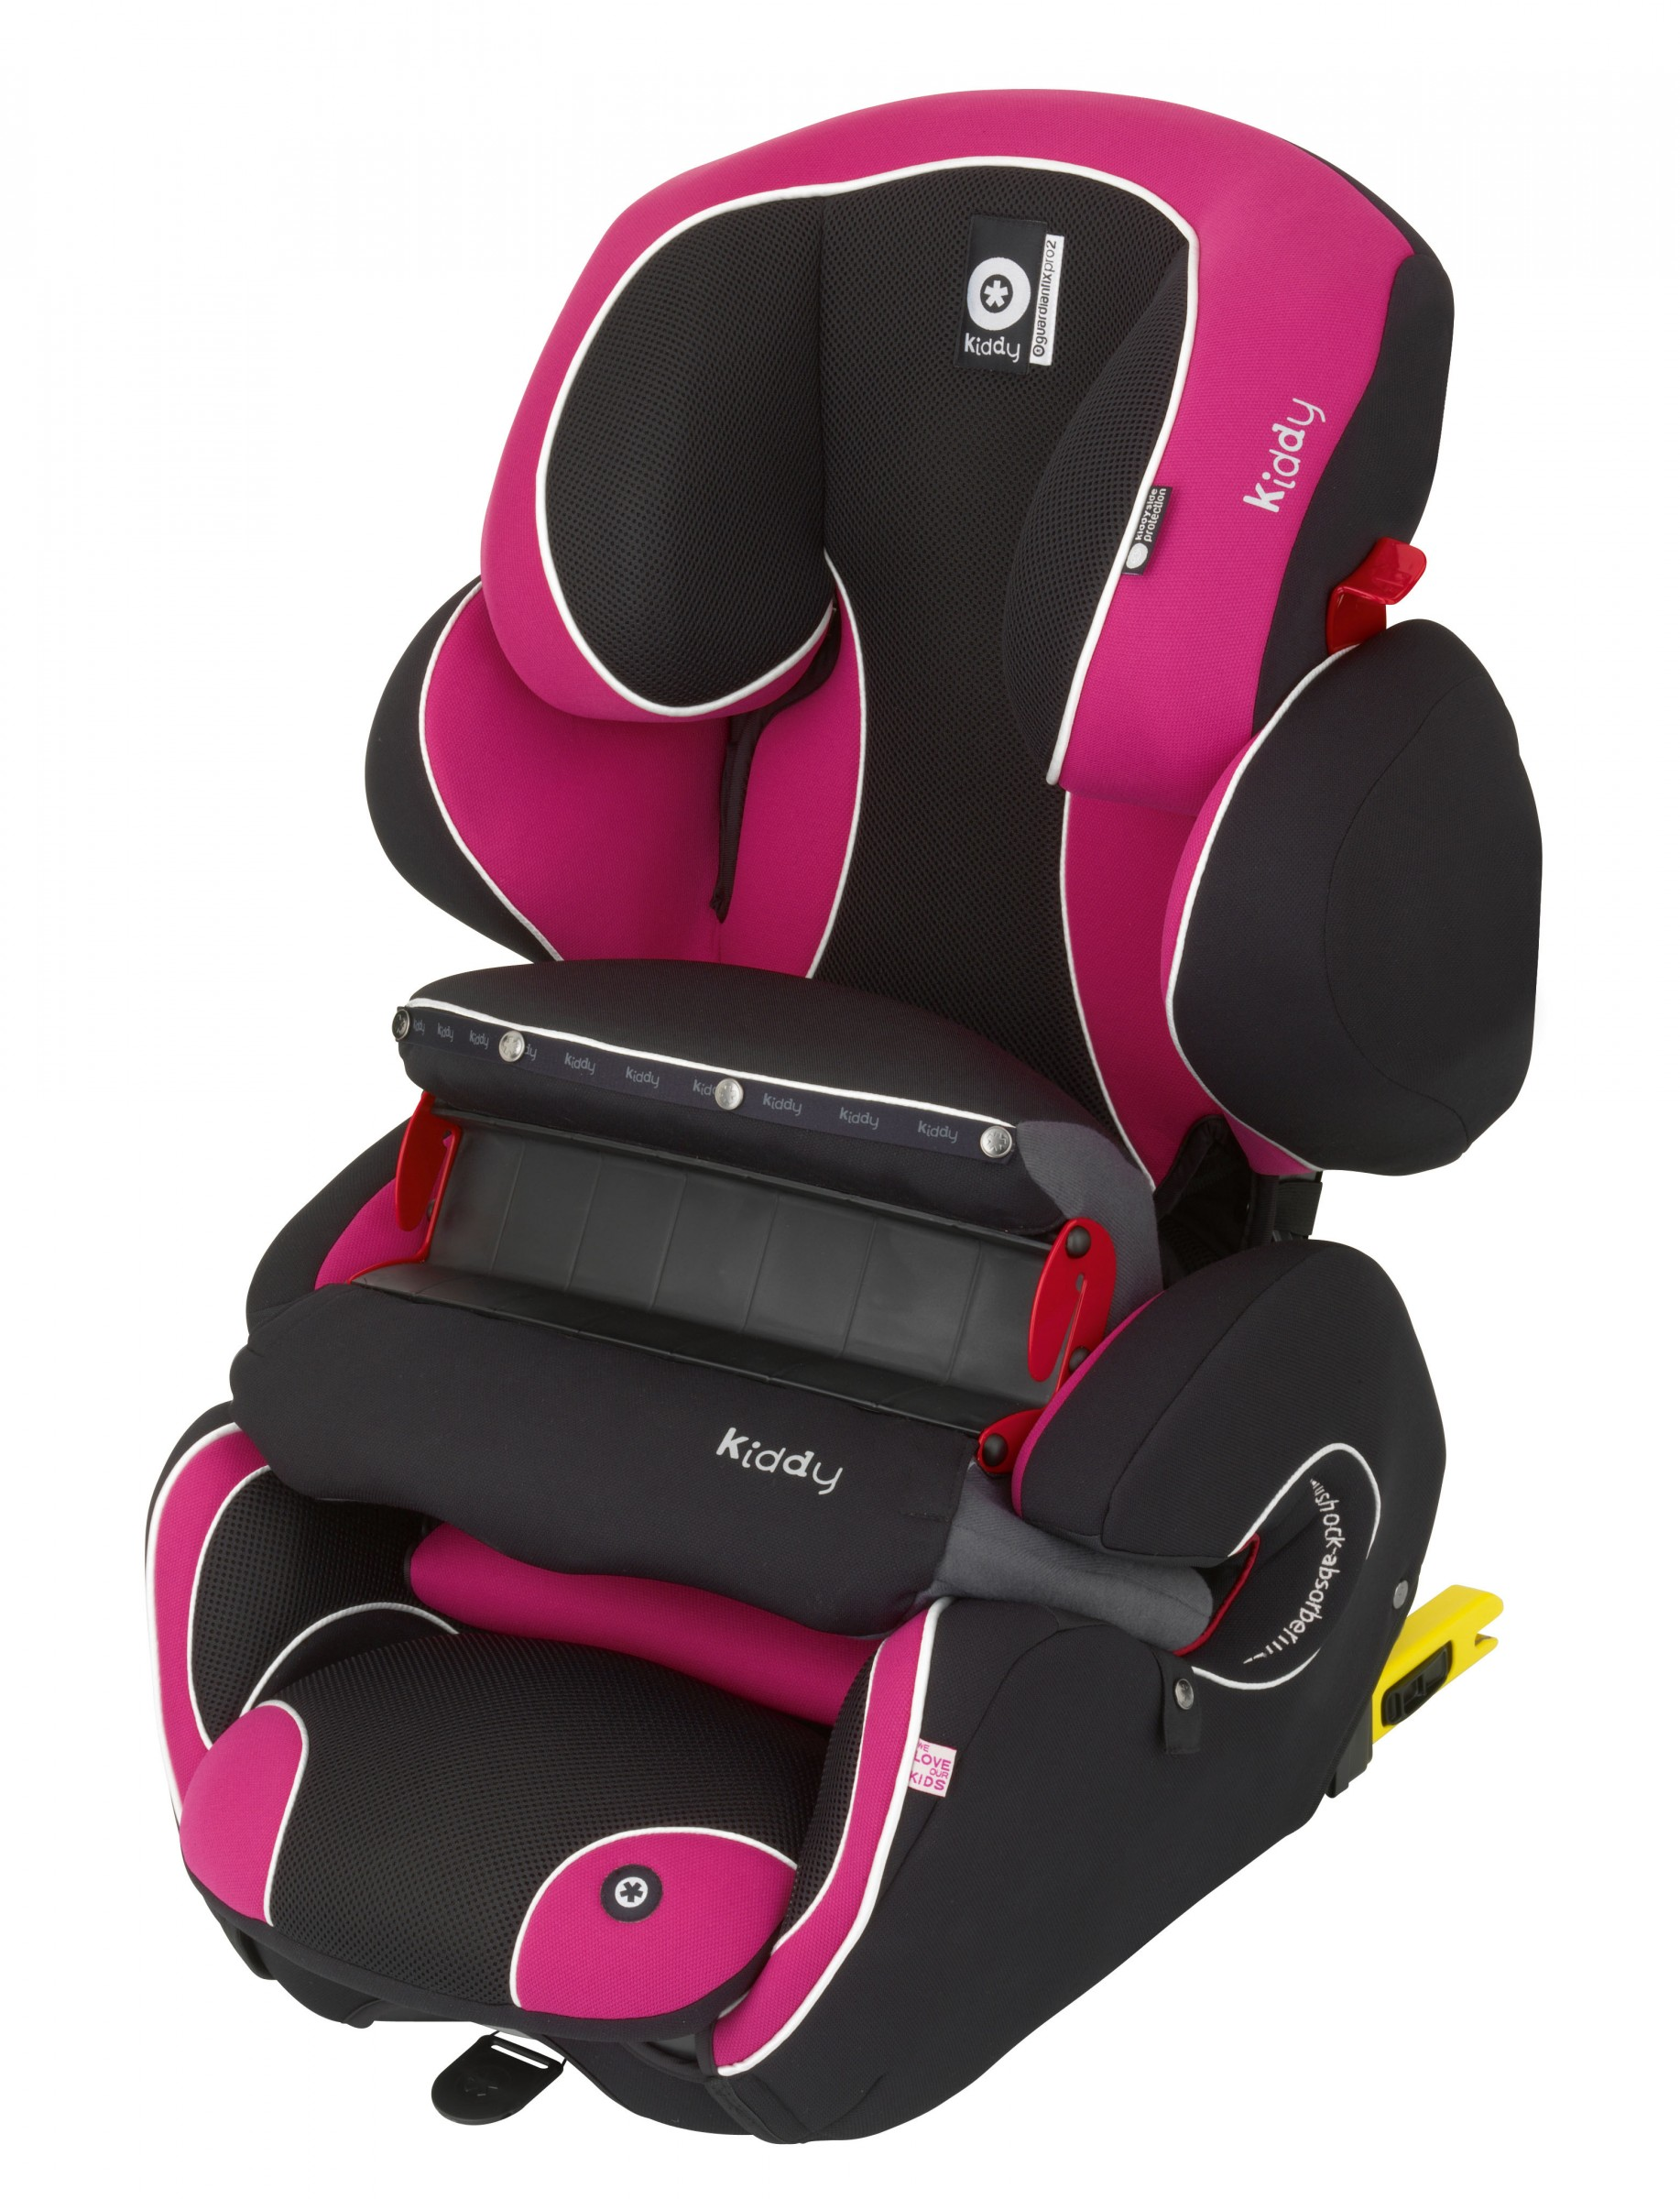 Kiddy Guardianfix Pro 2 052 pink